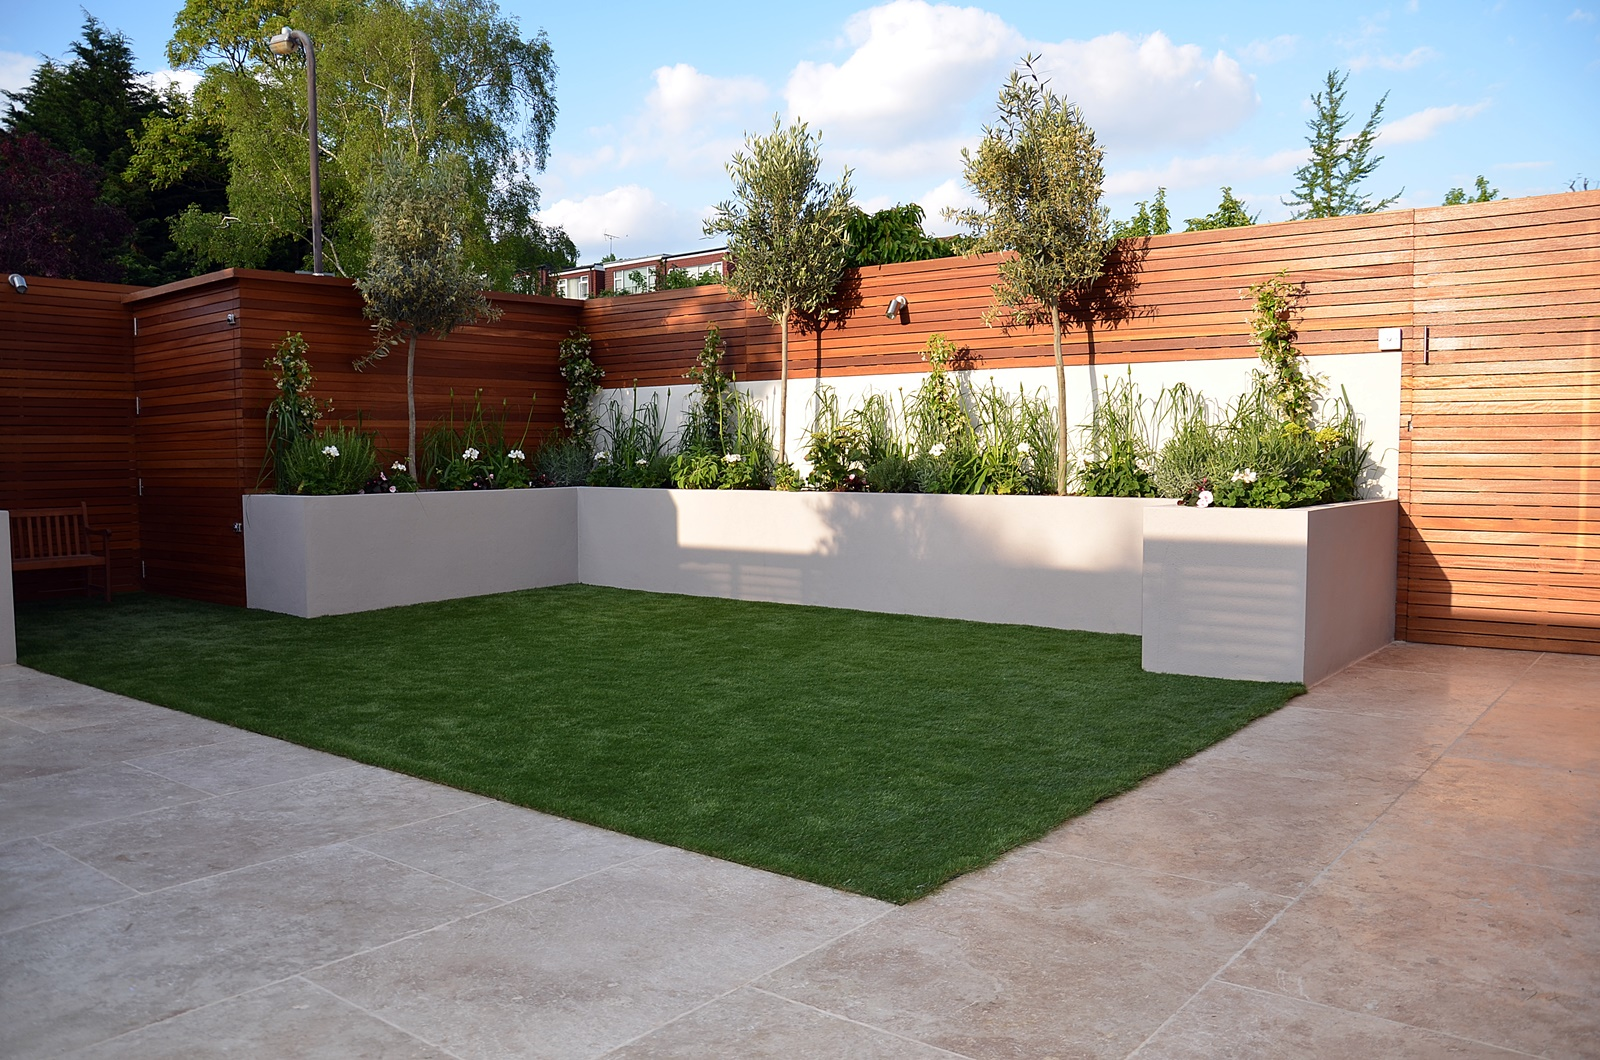 modern garden design designer islington kensington mayfair  W1 London